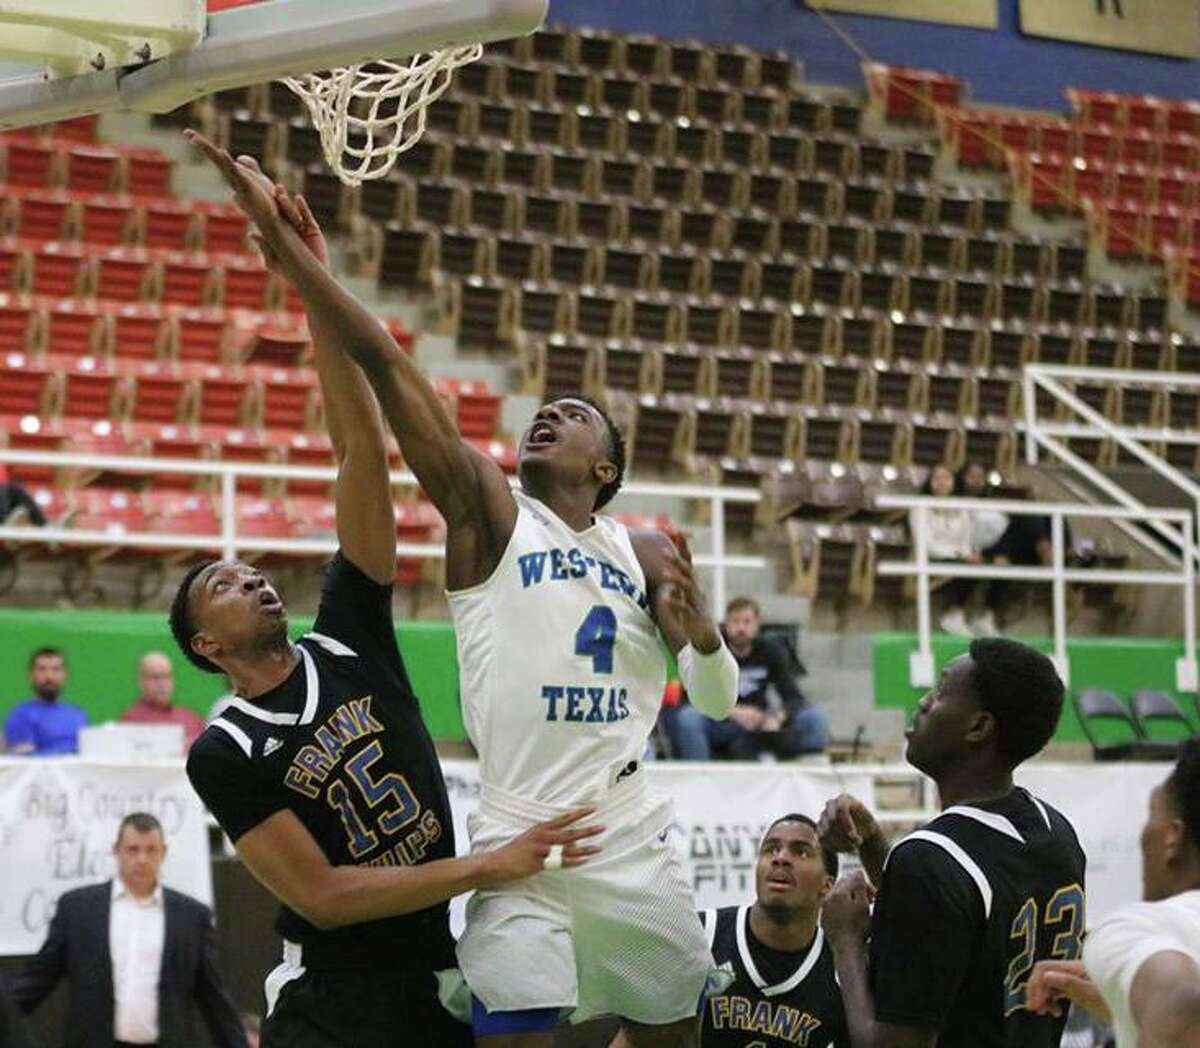 Willis graduate Darius Mickens averaged more than 13 points per game for Western Texas College this season. He will be transferring to Cal State San Bernardinio this summer.